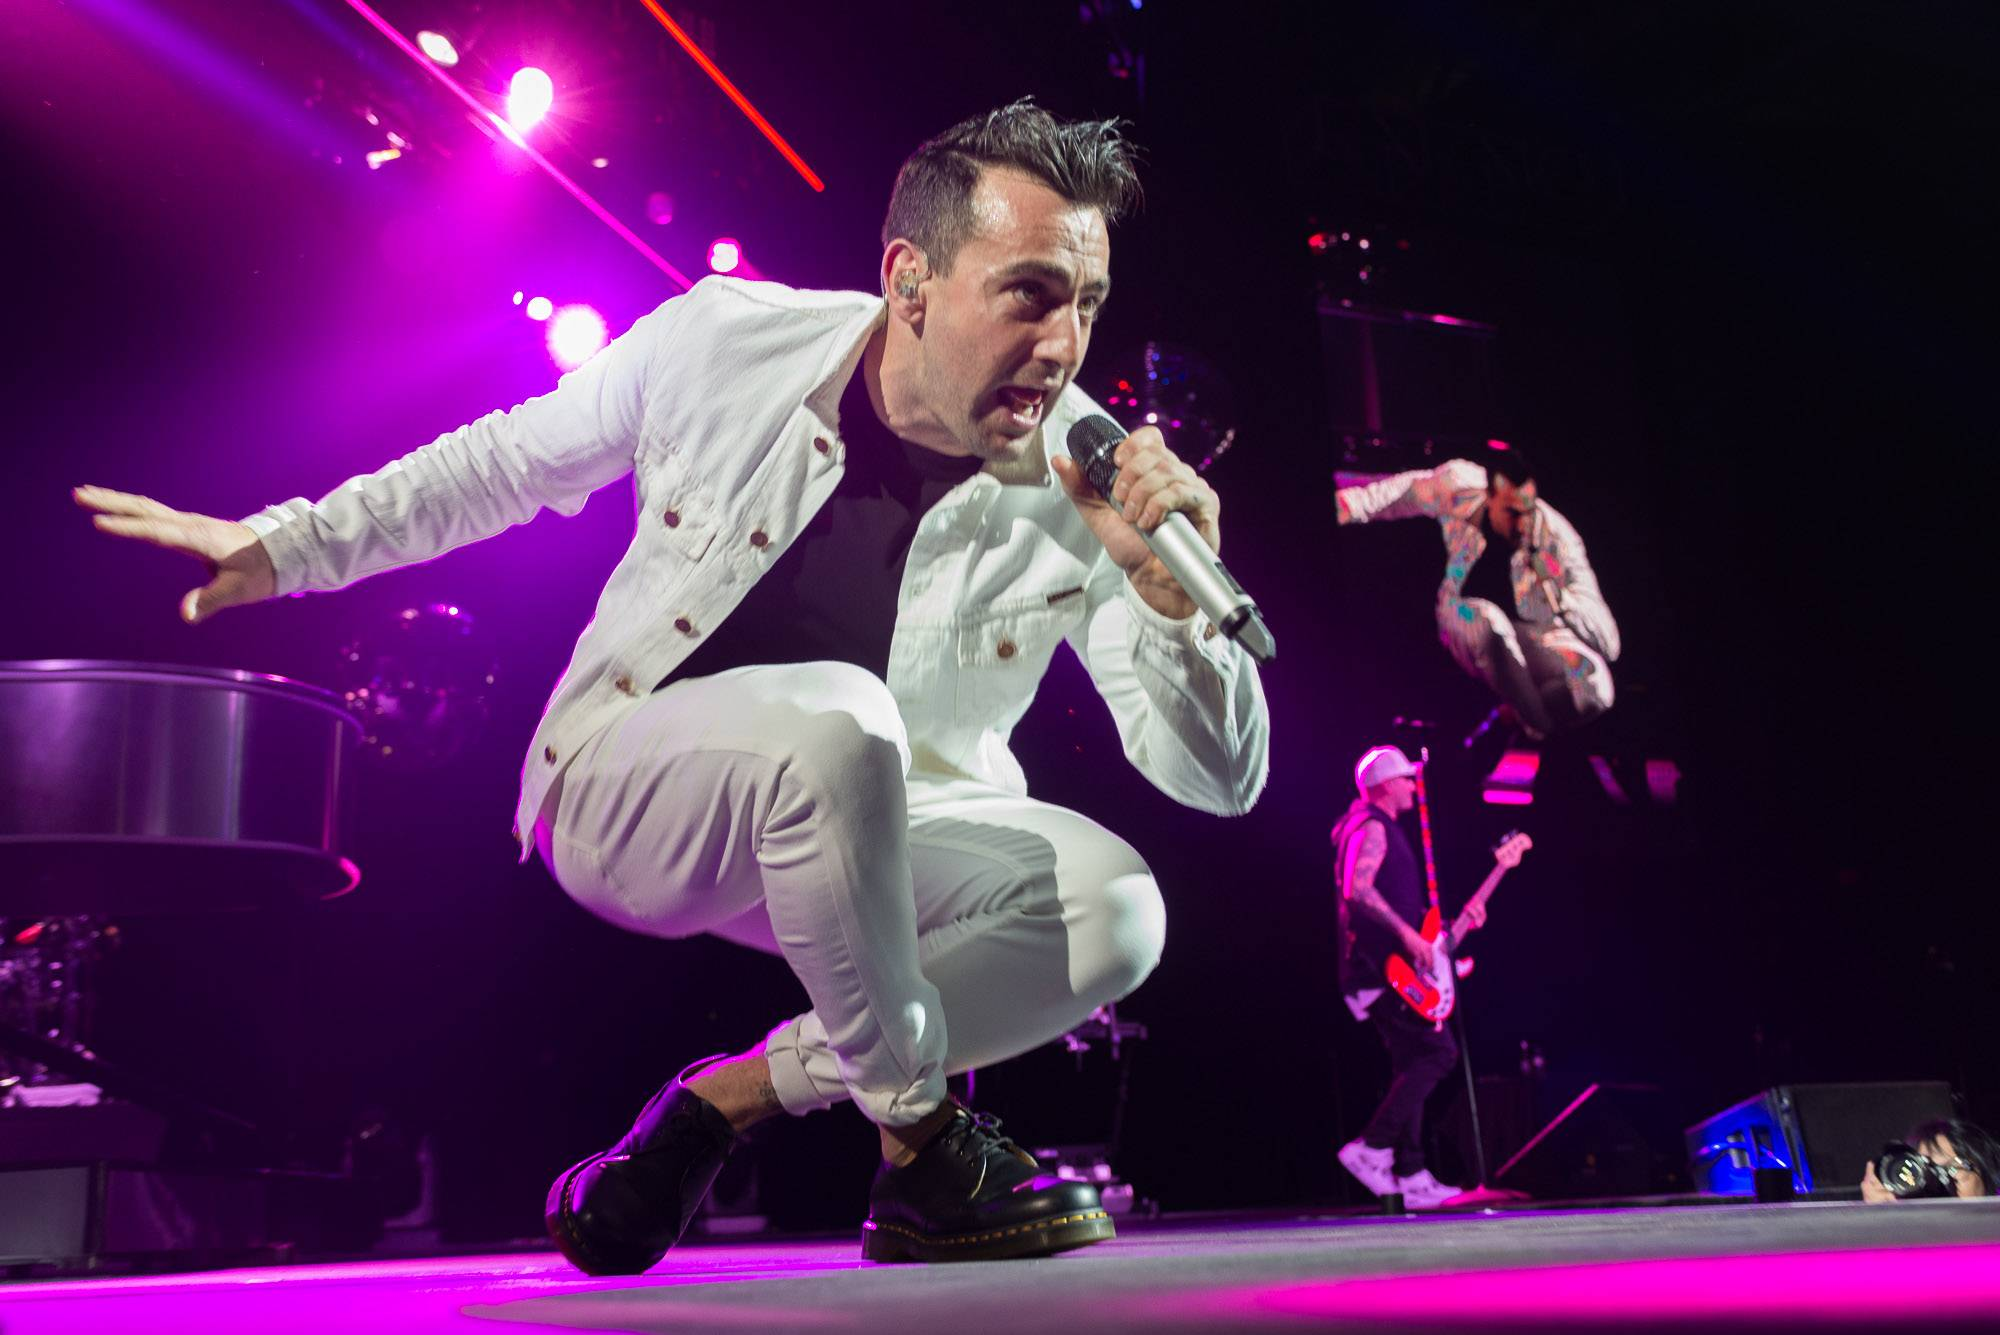 Hedley at the Abbotsford Centre, Abbotsford, Feb 5 2018. Jessica Vandergulik photo.